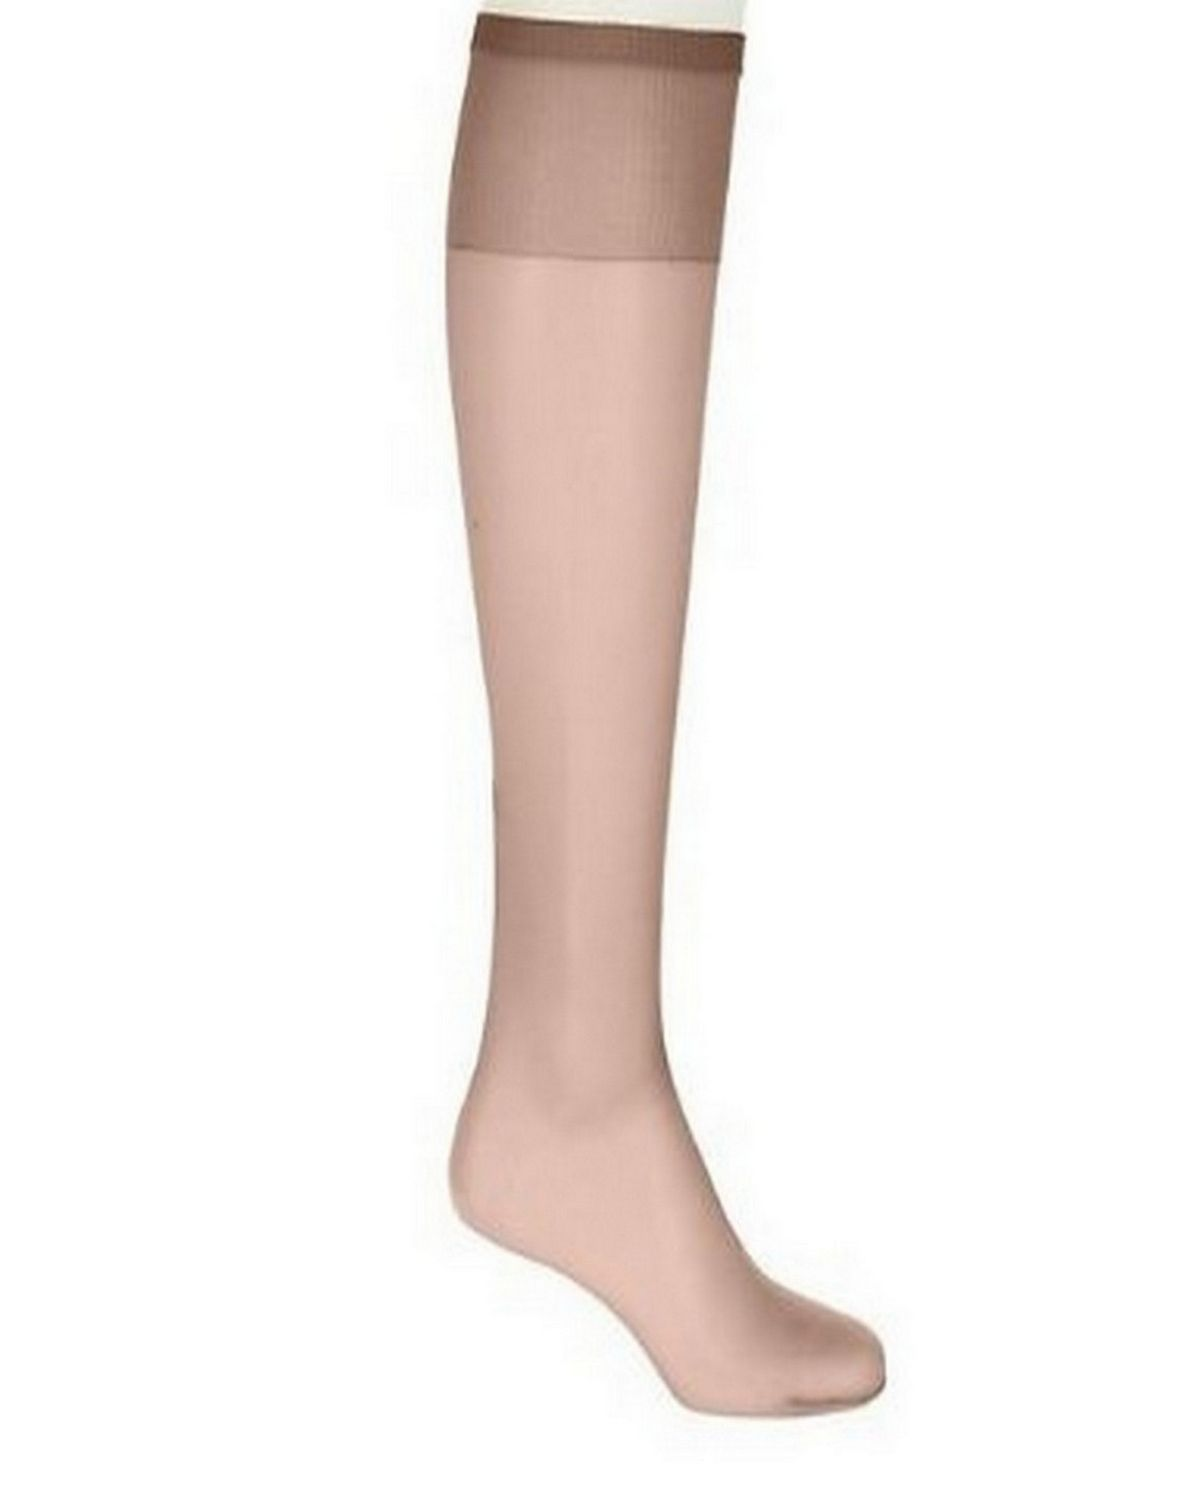 Hanes 00P19 Women's Silk Reflections Plus Silky Sheer Knee High ET - Barely There - One Size #silk